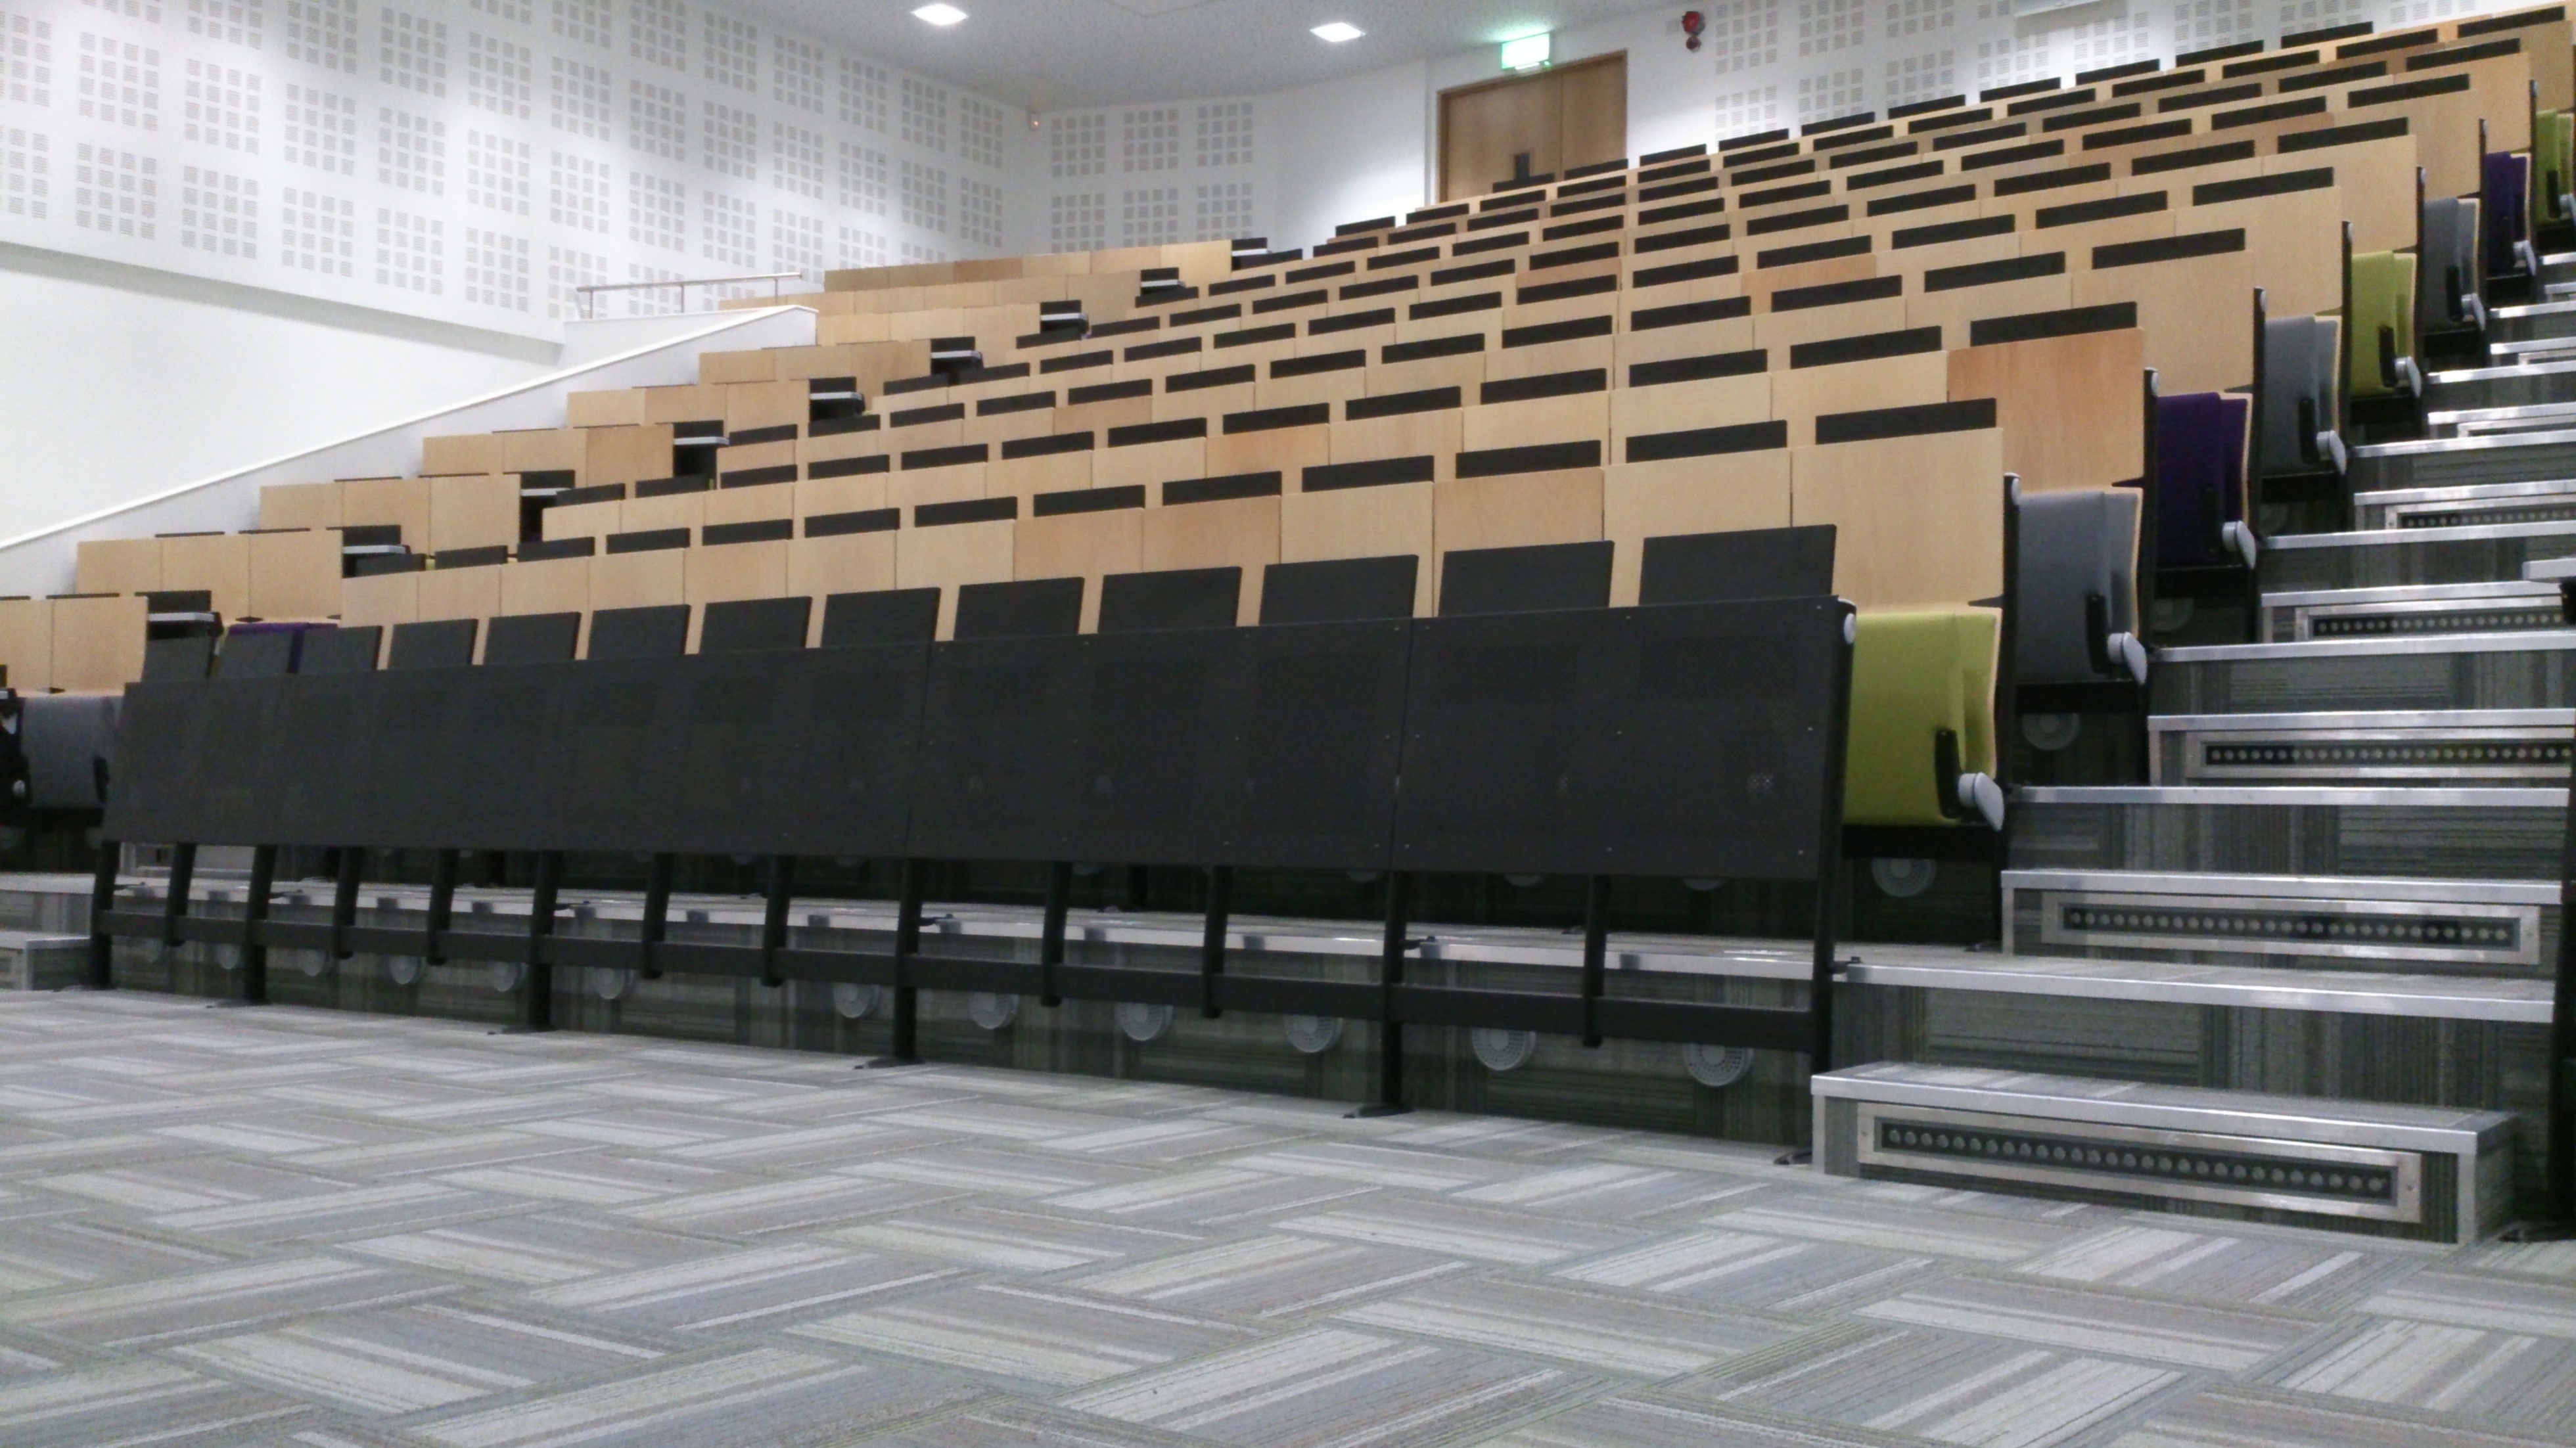 University of Limerick, lecture halls